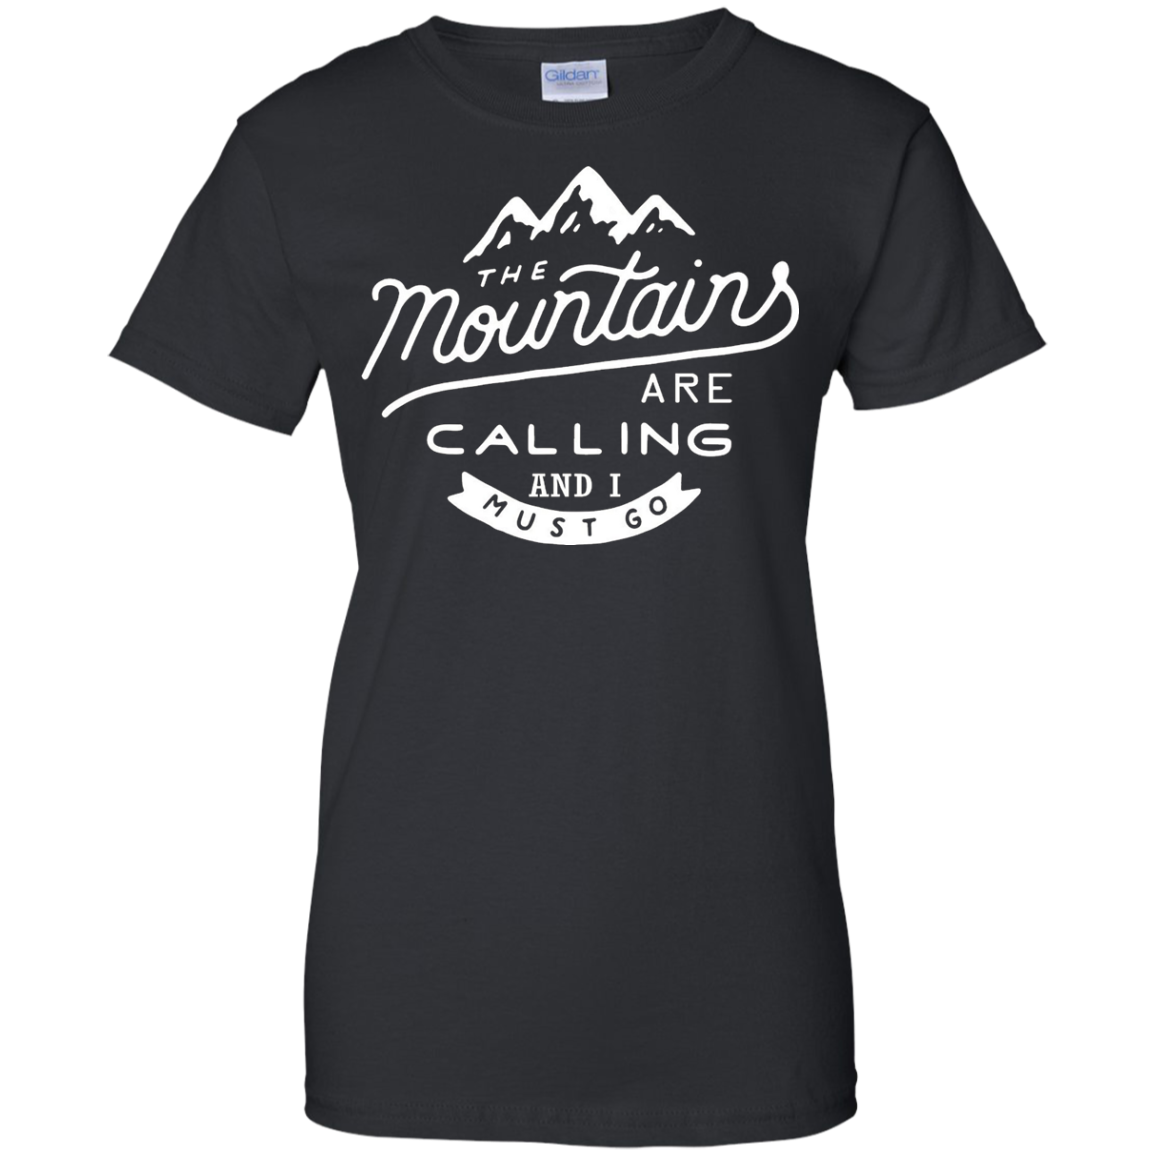 The Mountains Are Calling And I Must Go Funny T-Shirt